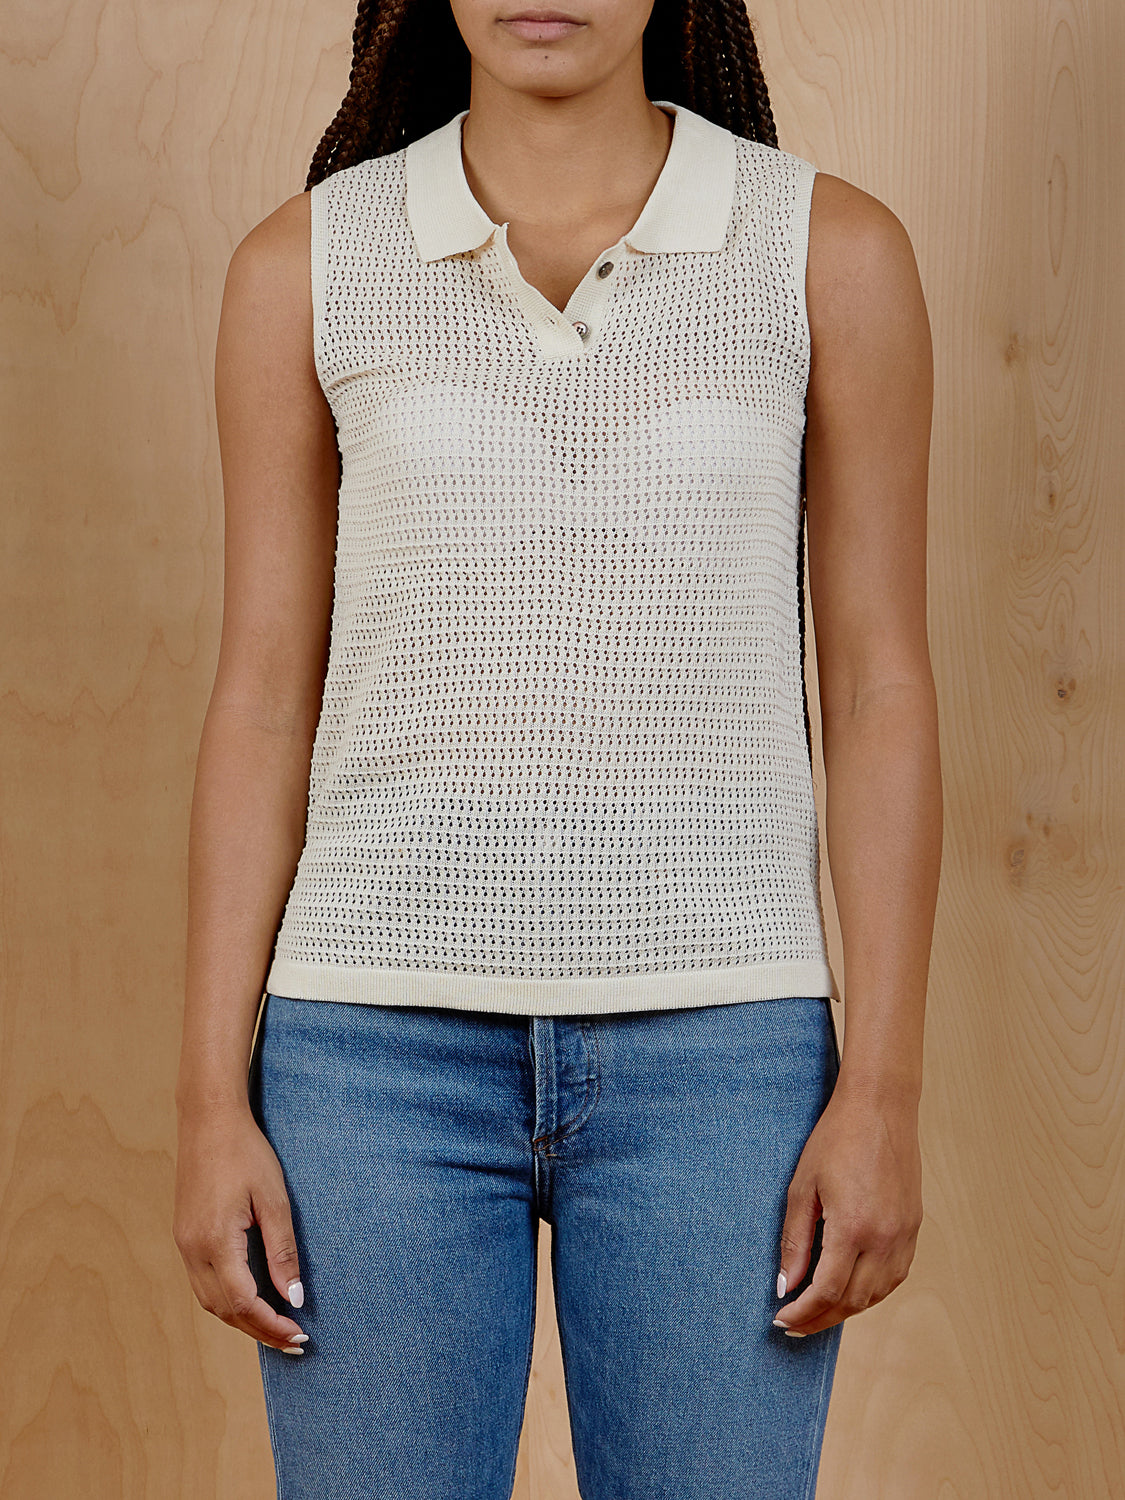 Oak + Fort Knit Tank Top with Collar